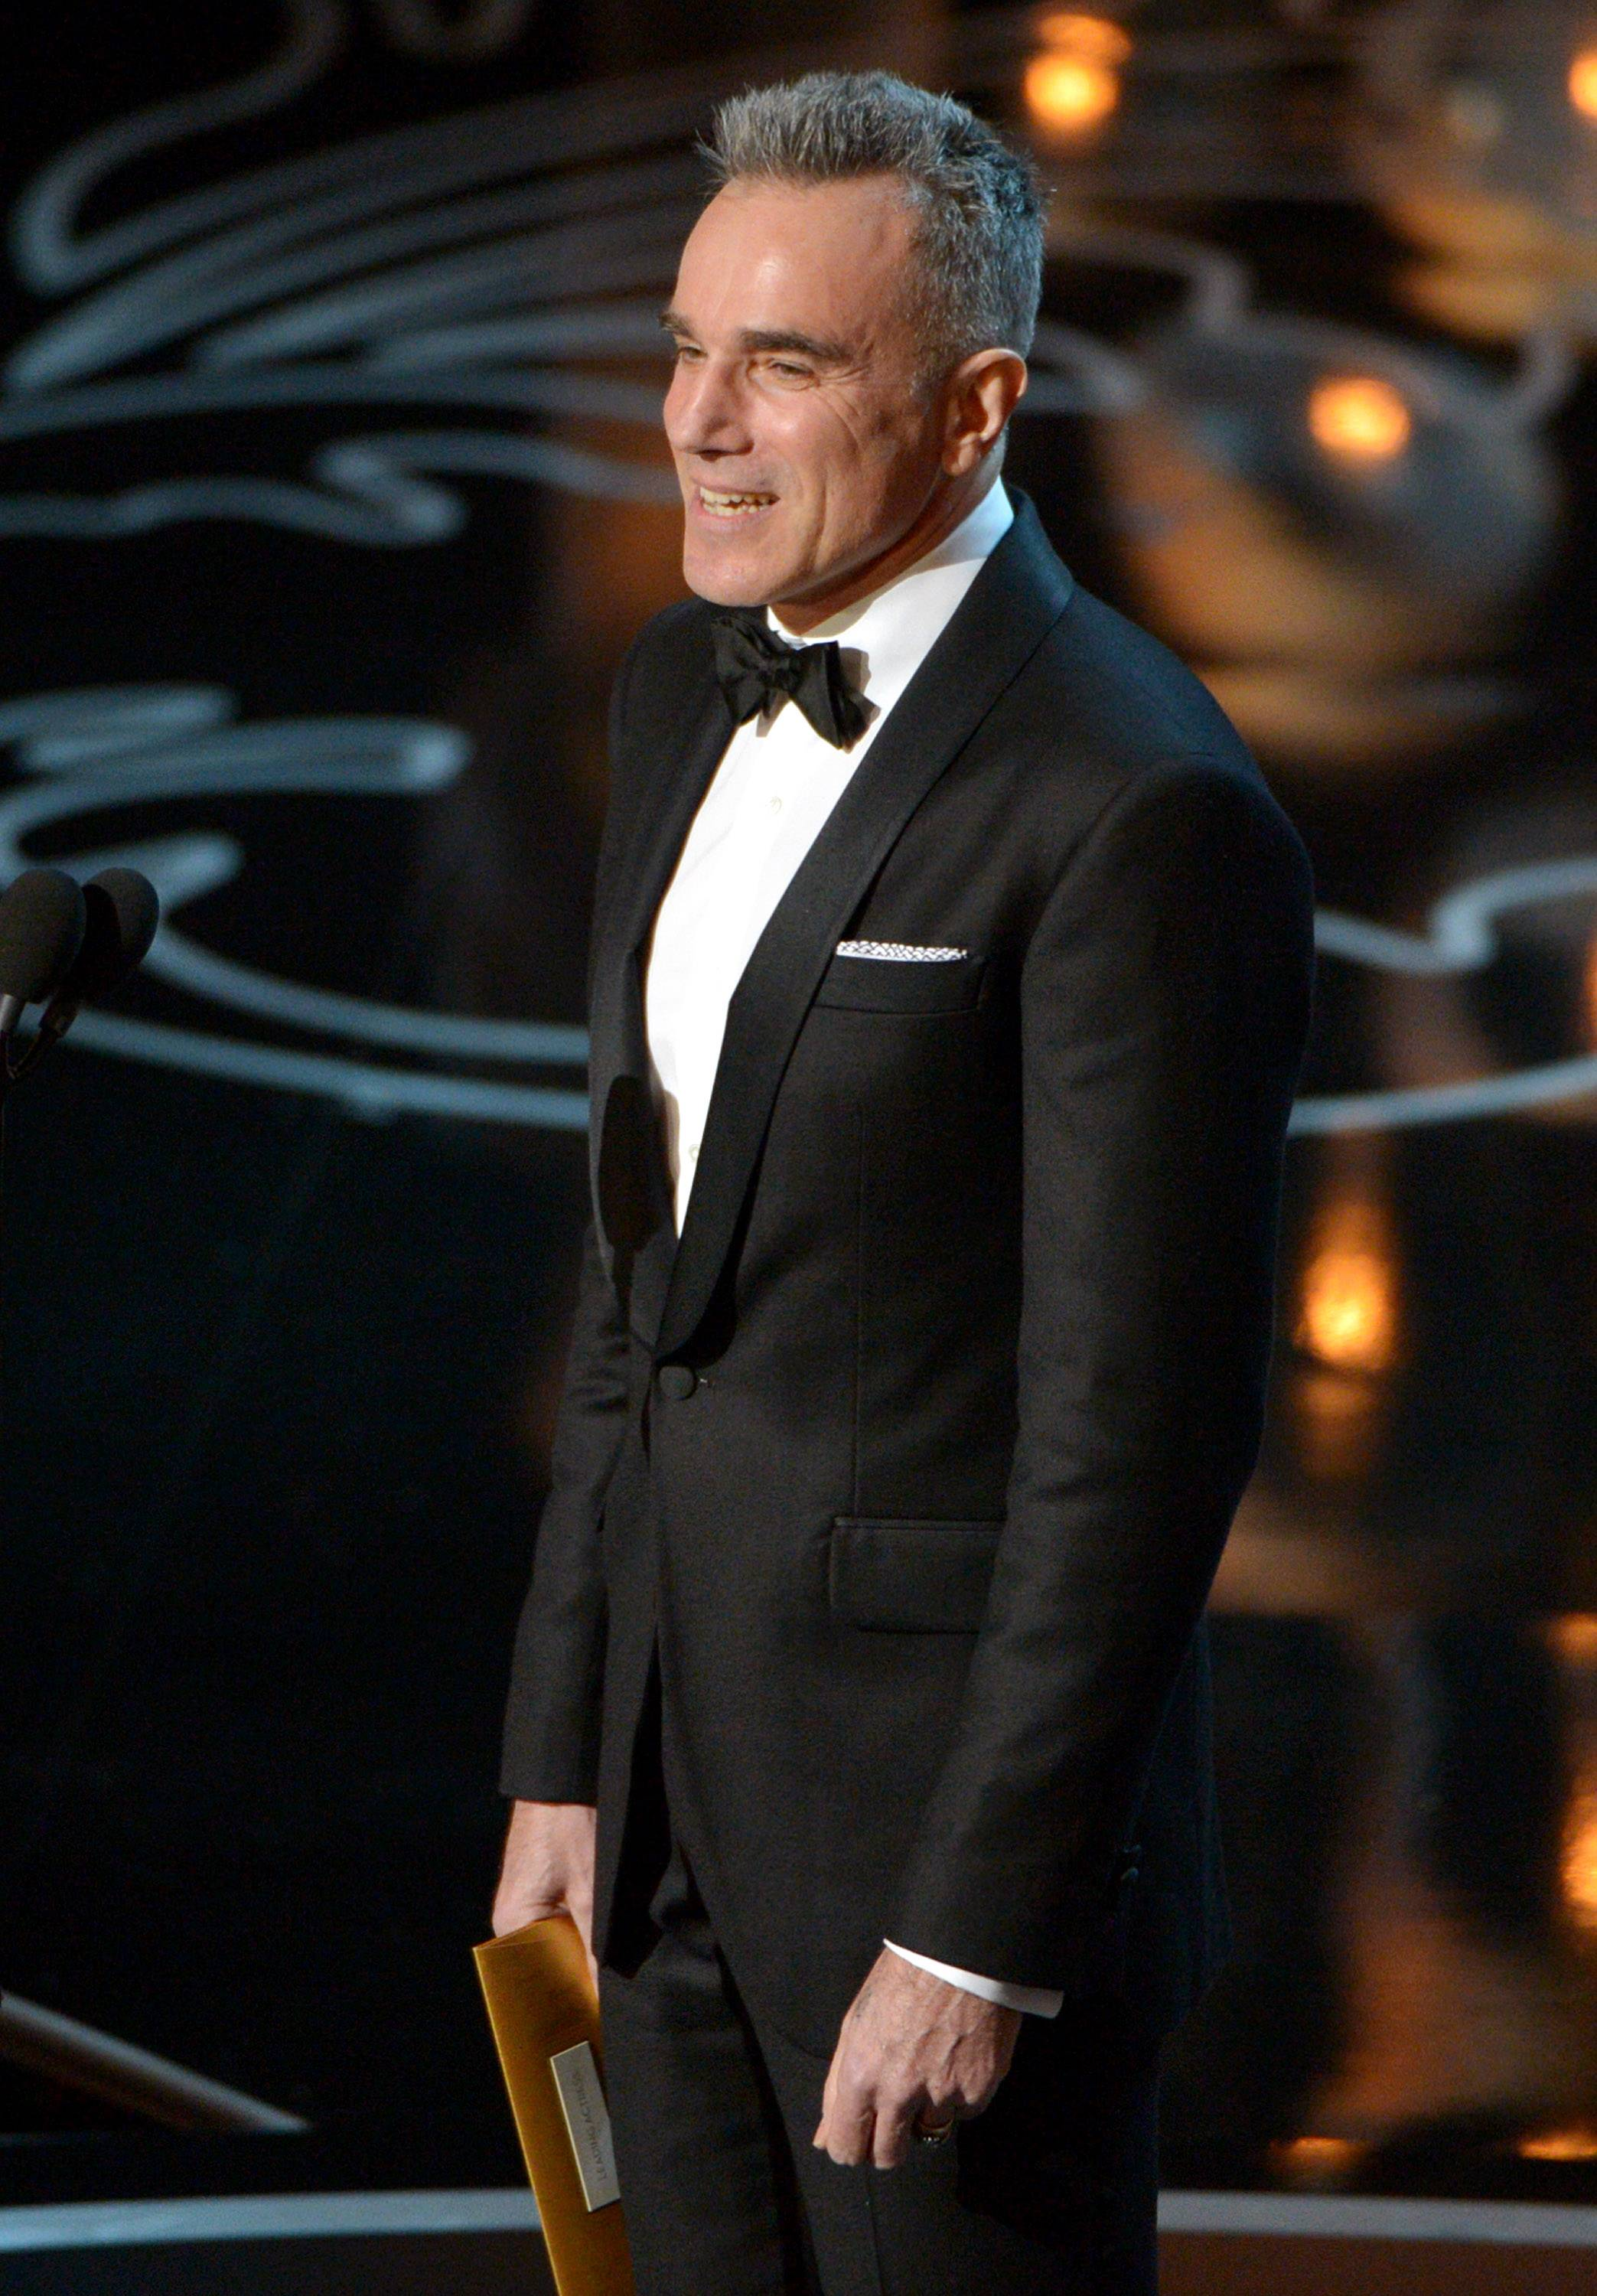 From Oscar winner last year to presenter this year, Daniel Day-Lewis speaks during the Oscars.